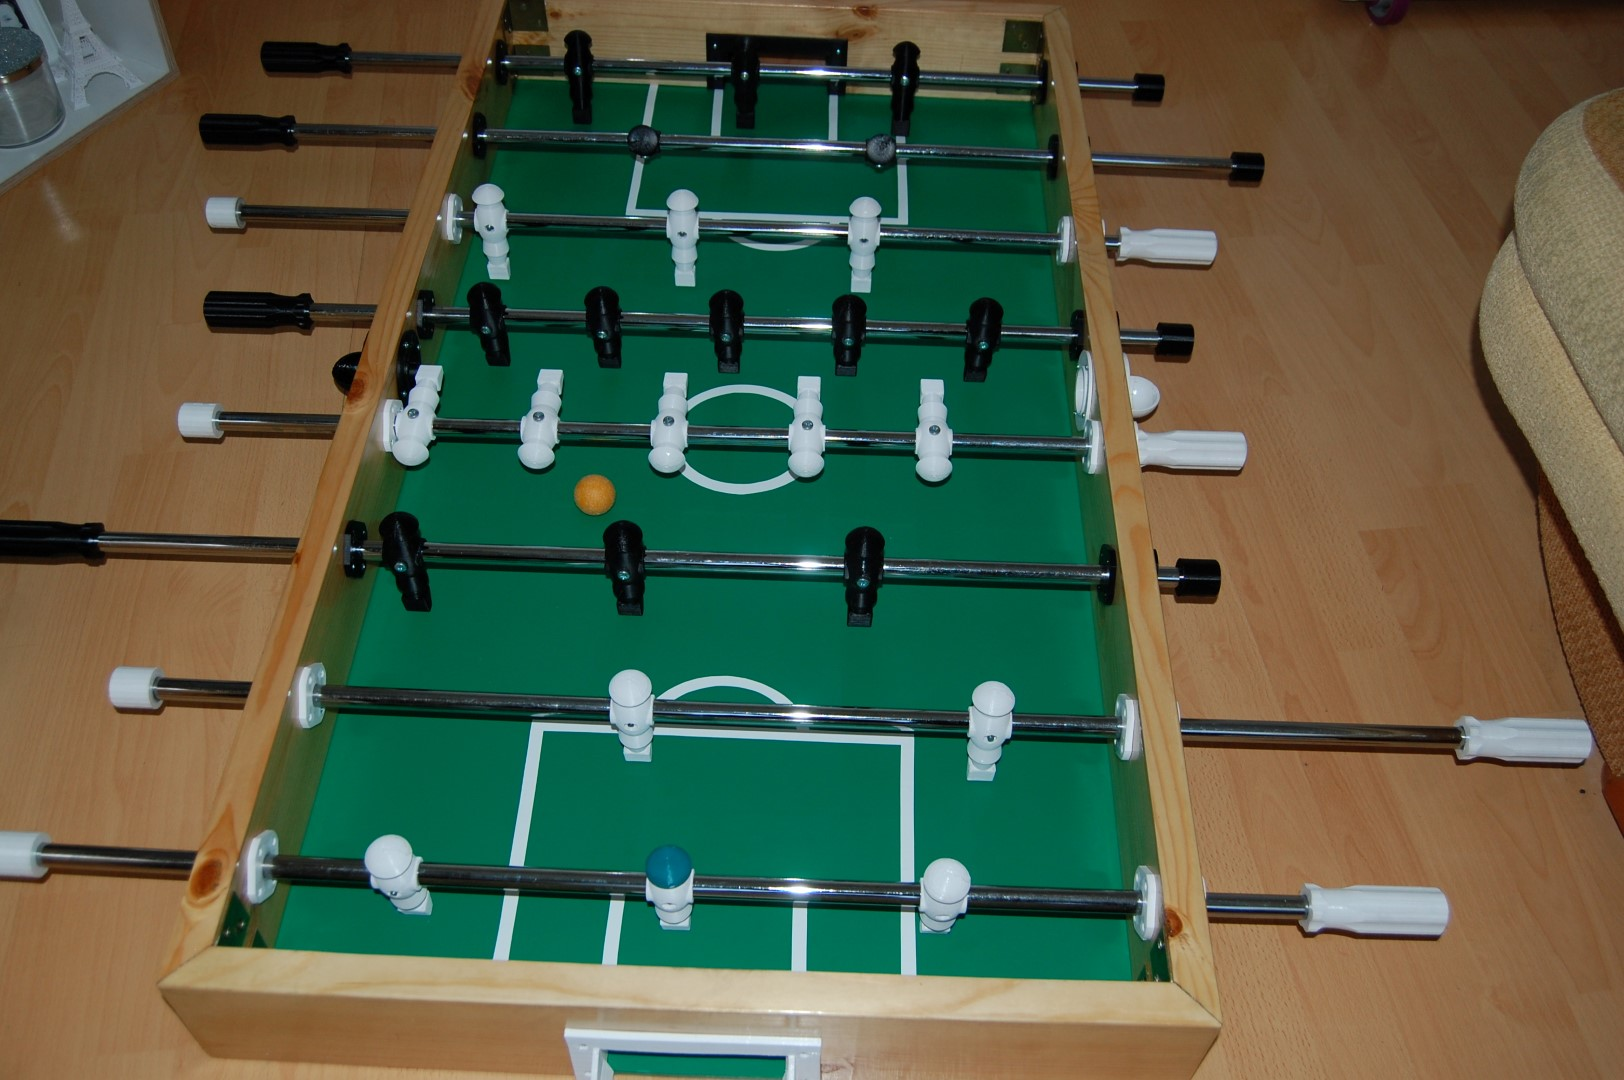 Picture of The Playfield